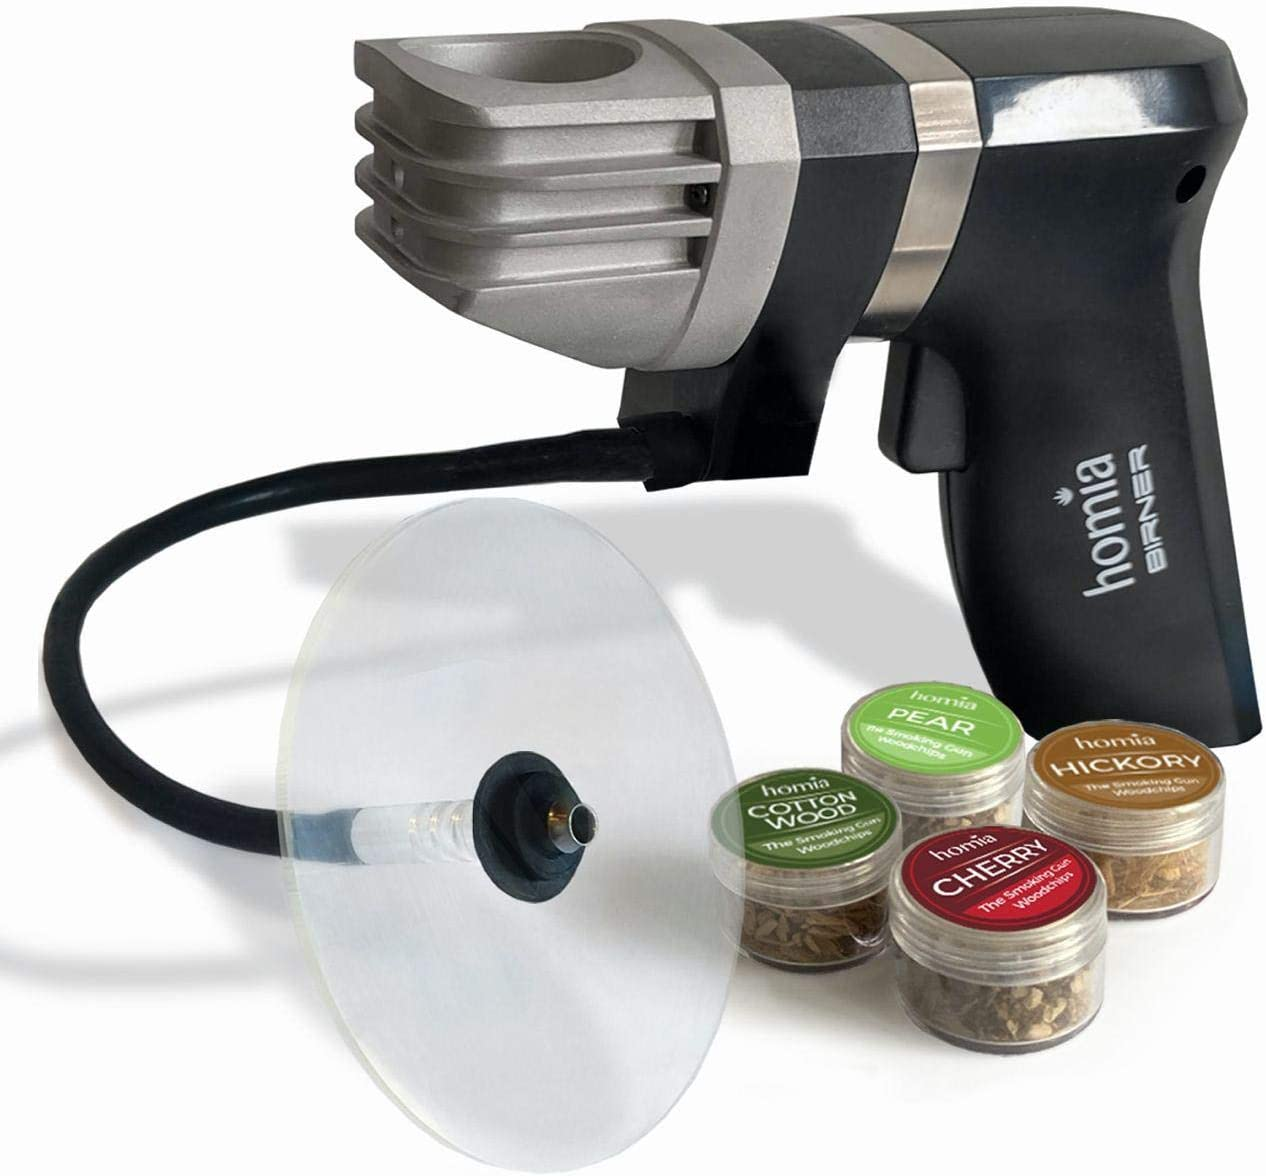 Smoking Gun Wood Smoke Infuser - Starter Kit, 11 PCS, Portable Electric Smoker Machine with Accessories and Wood Chips - Cold Smoke for Food and Drinks